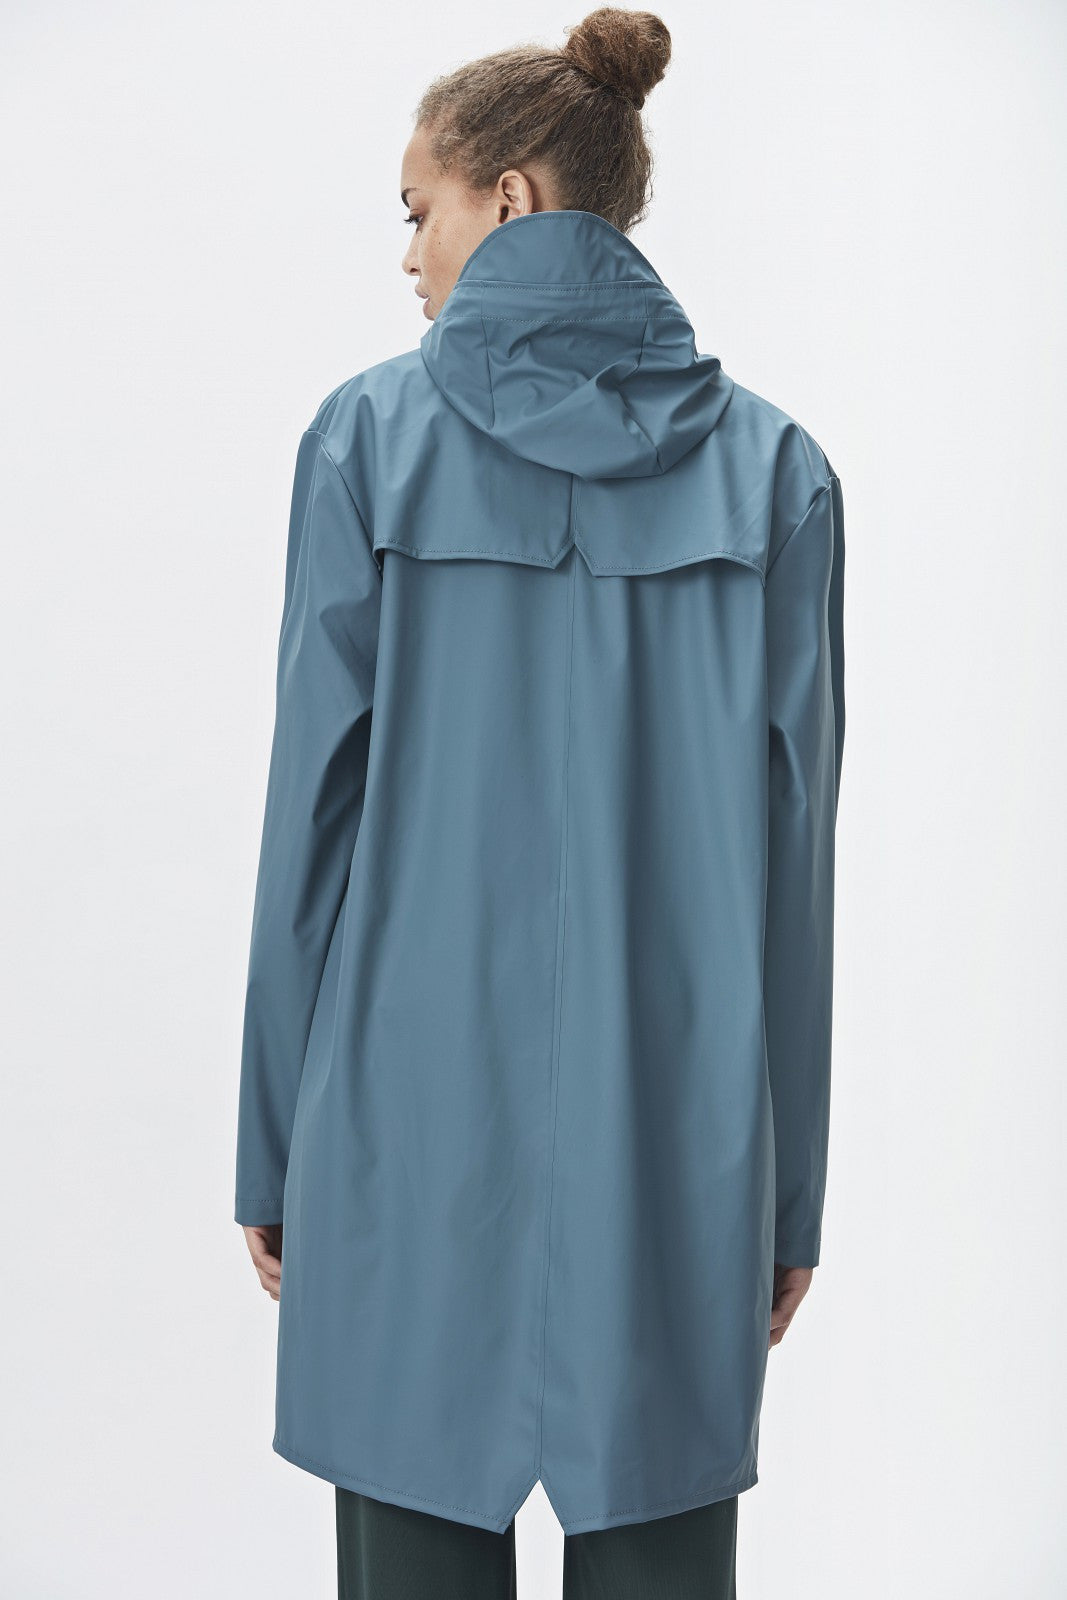 Long Jacket - Pacific (w)